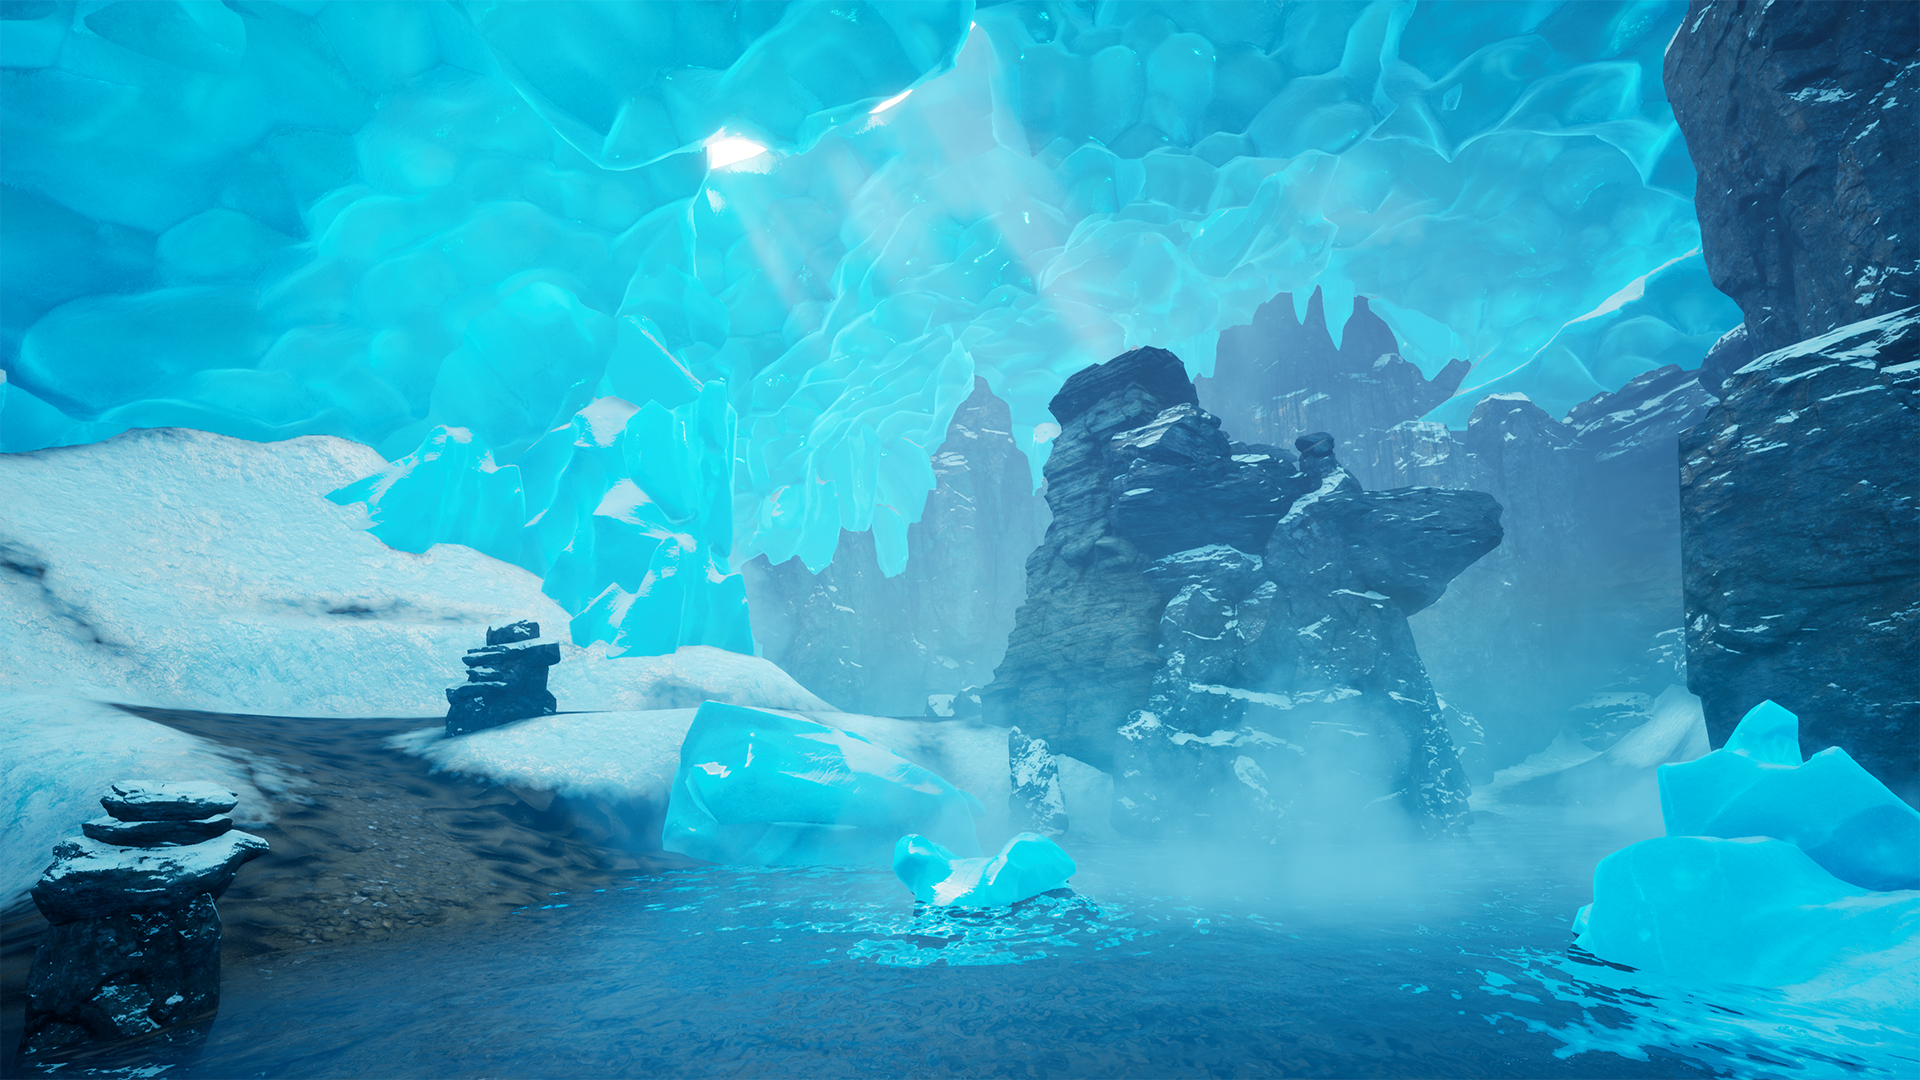 Spirit of the North on PS4